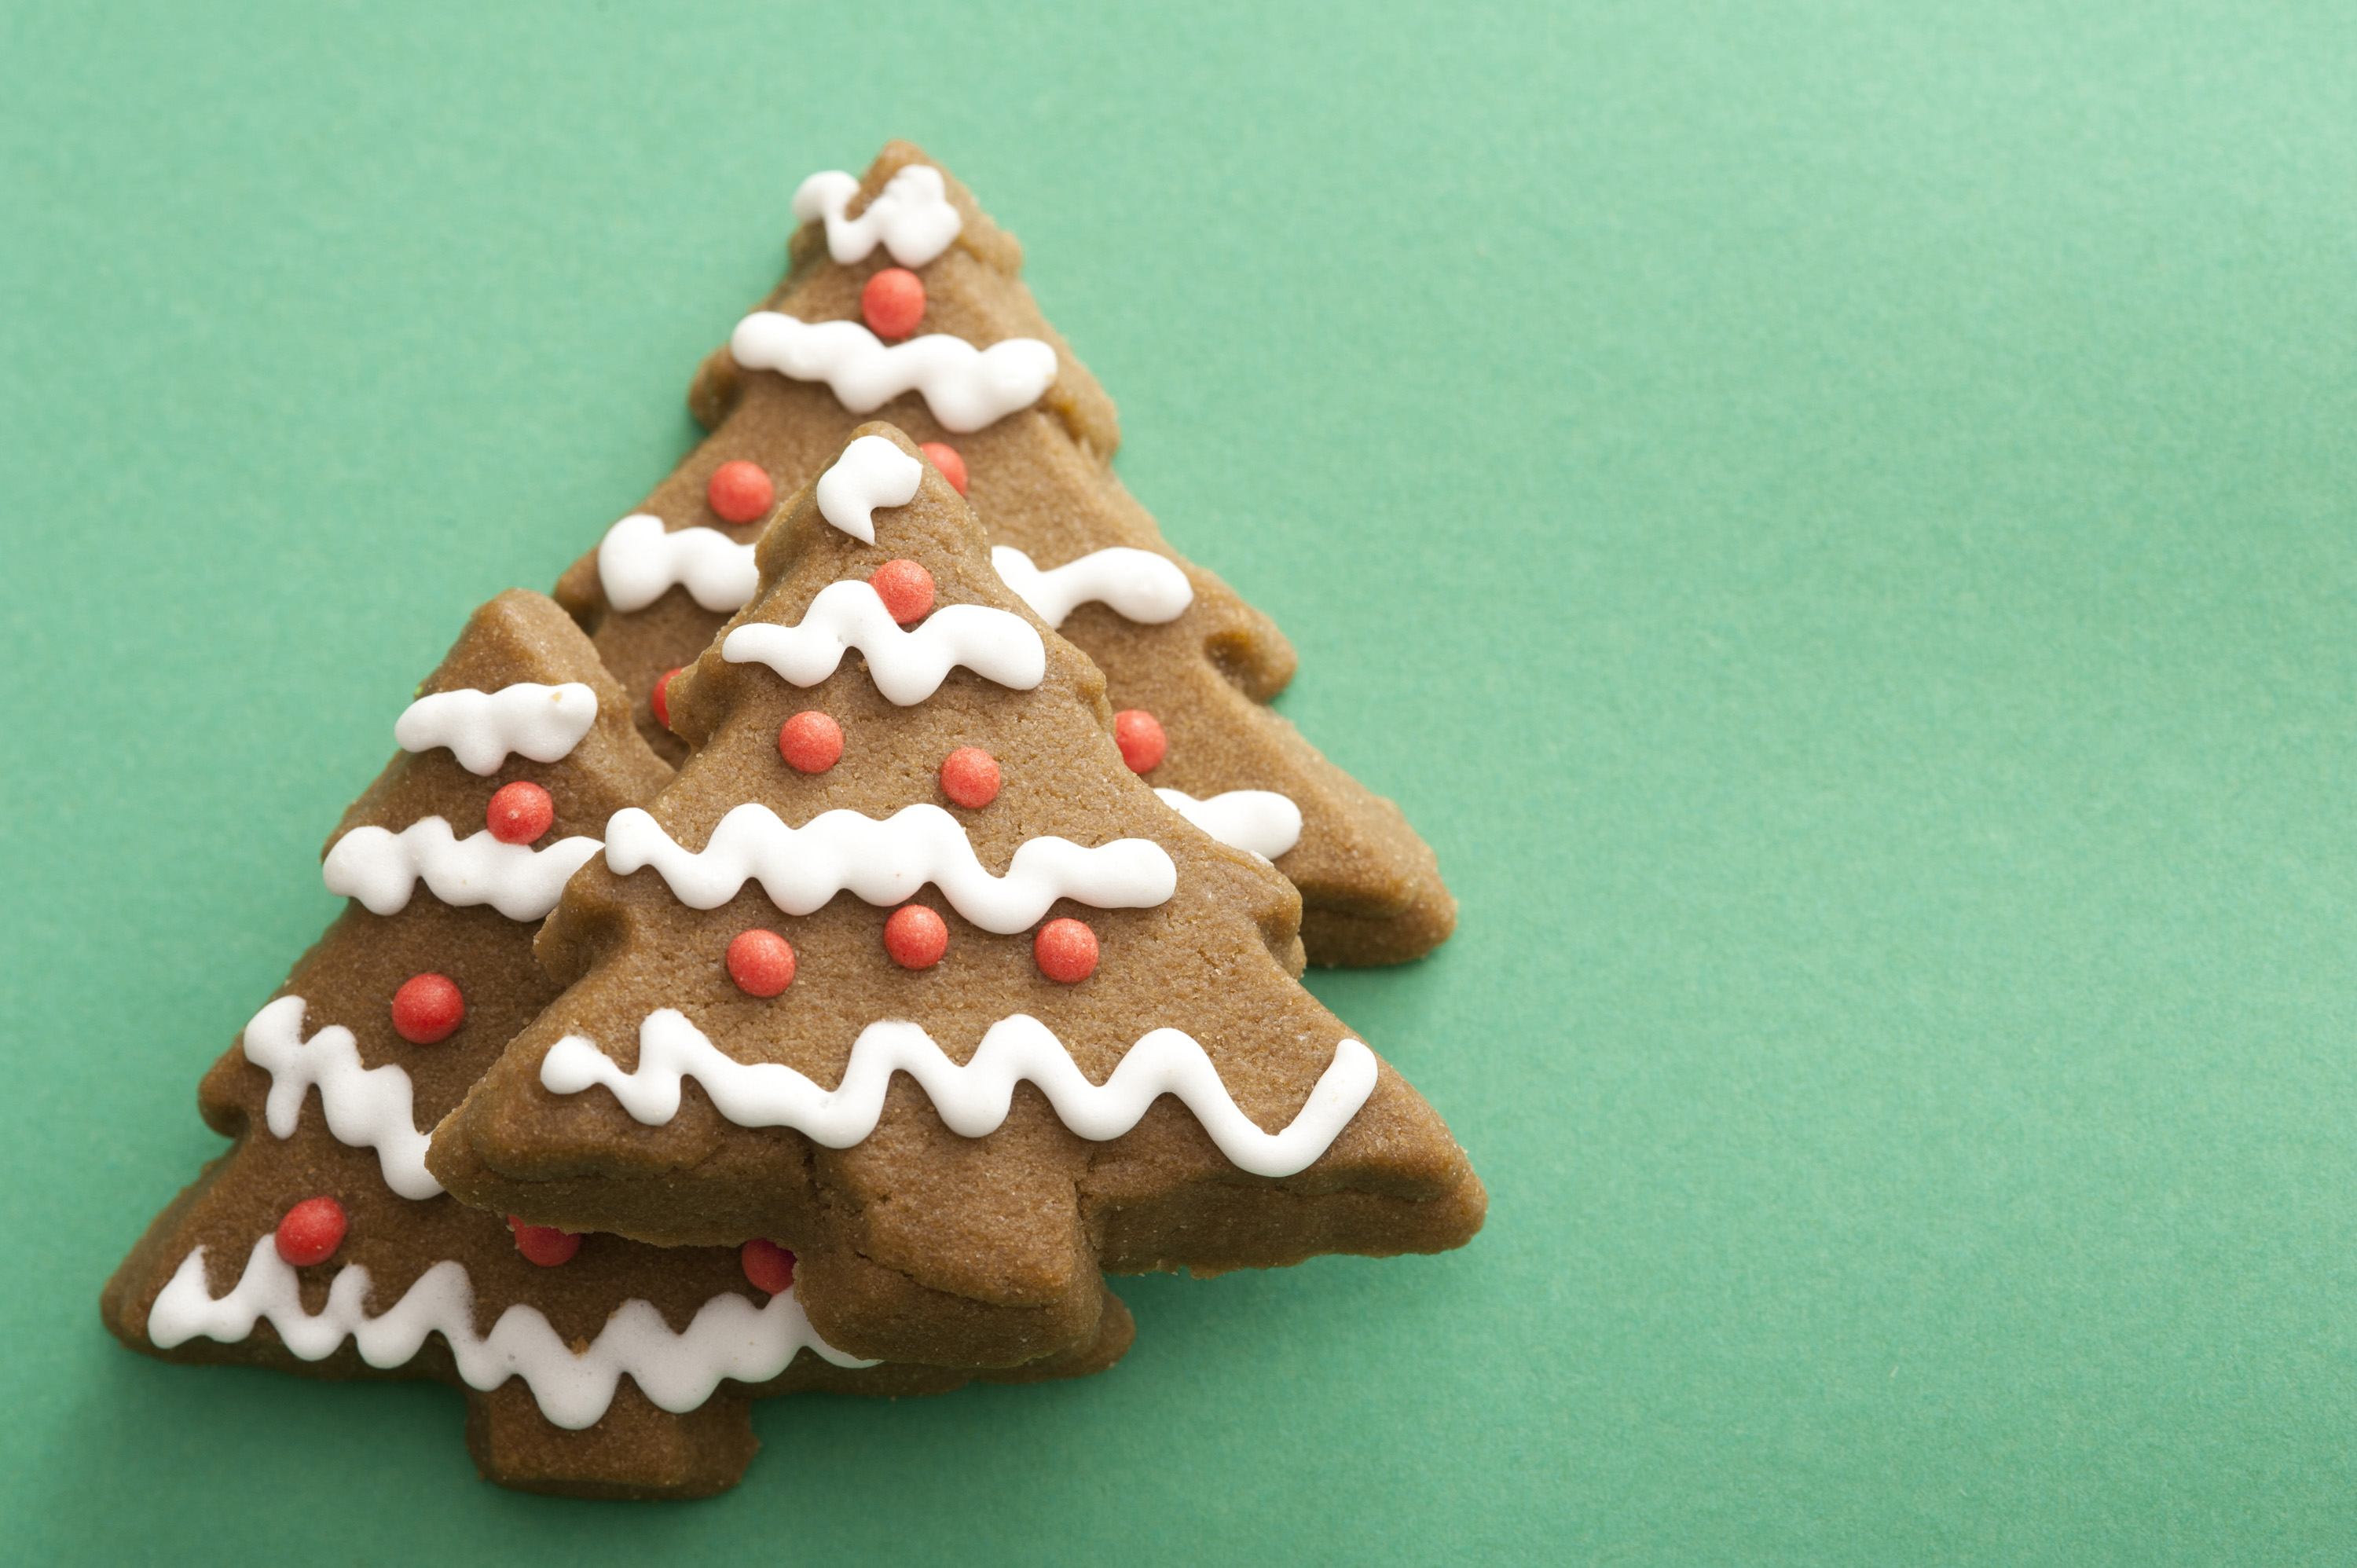 Photo Of Decorative Iced Gingerbread Christmas Tree Cookies Free